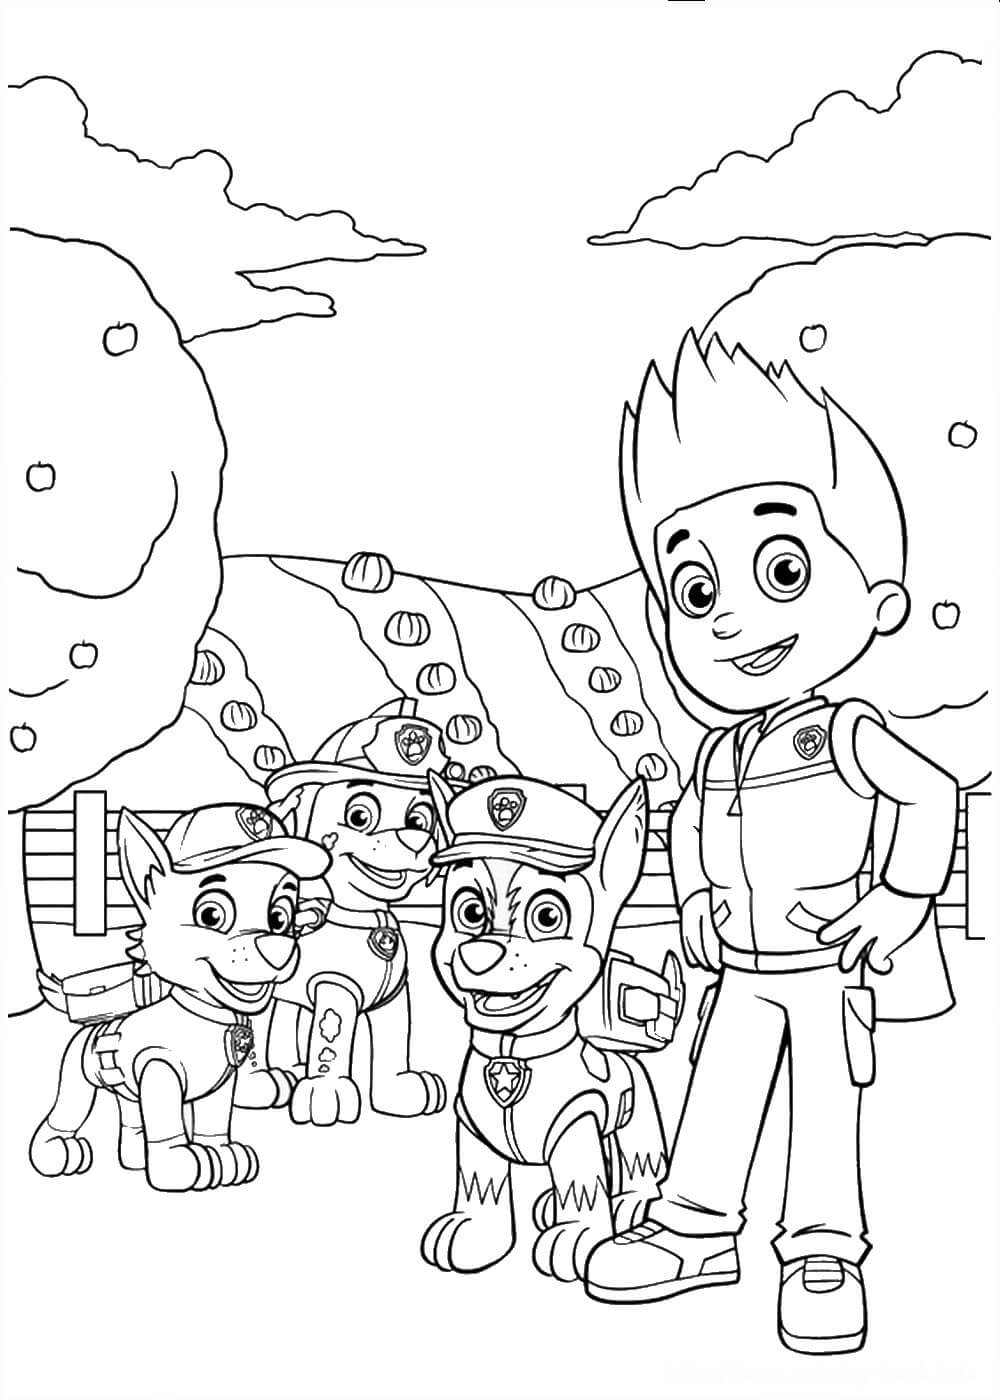 paw patrol free coloring pages printable everest paw patrol coloring lesson kids coloring page patrol printable paw coloring pages free